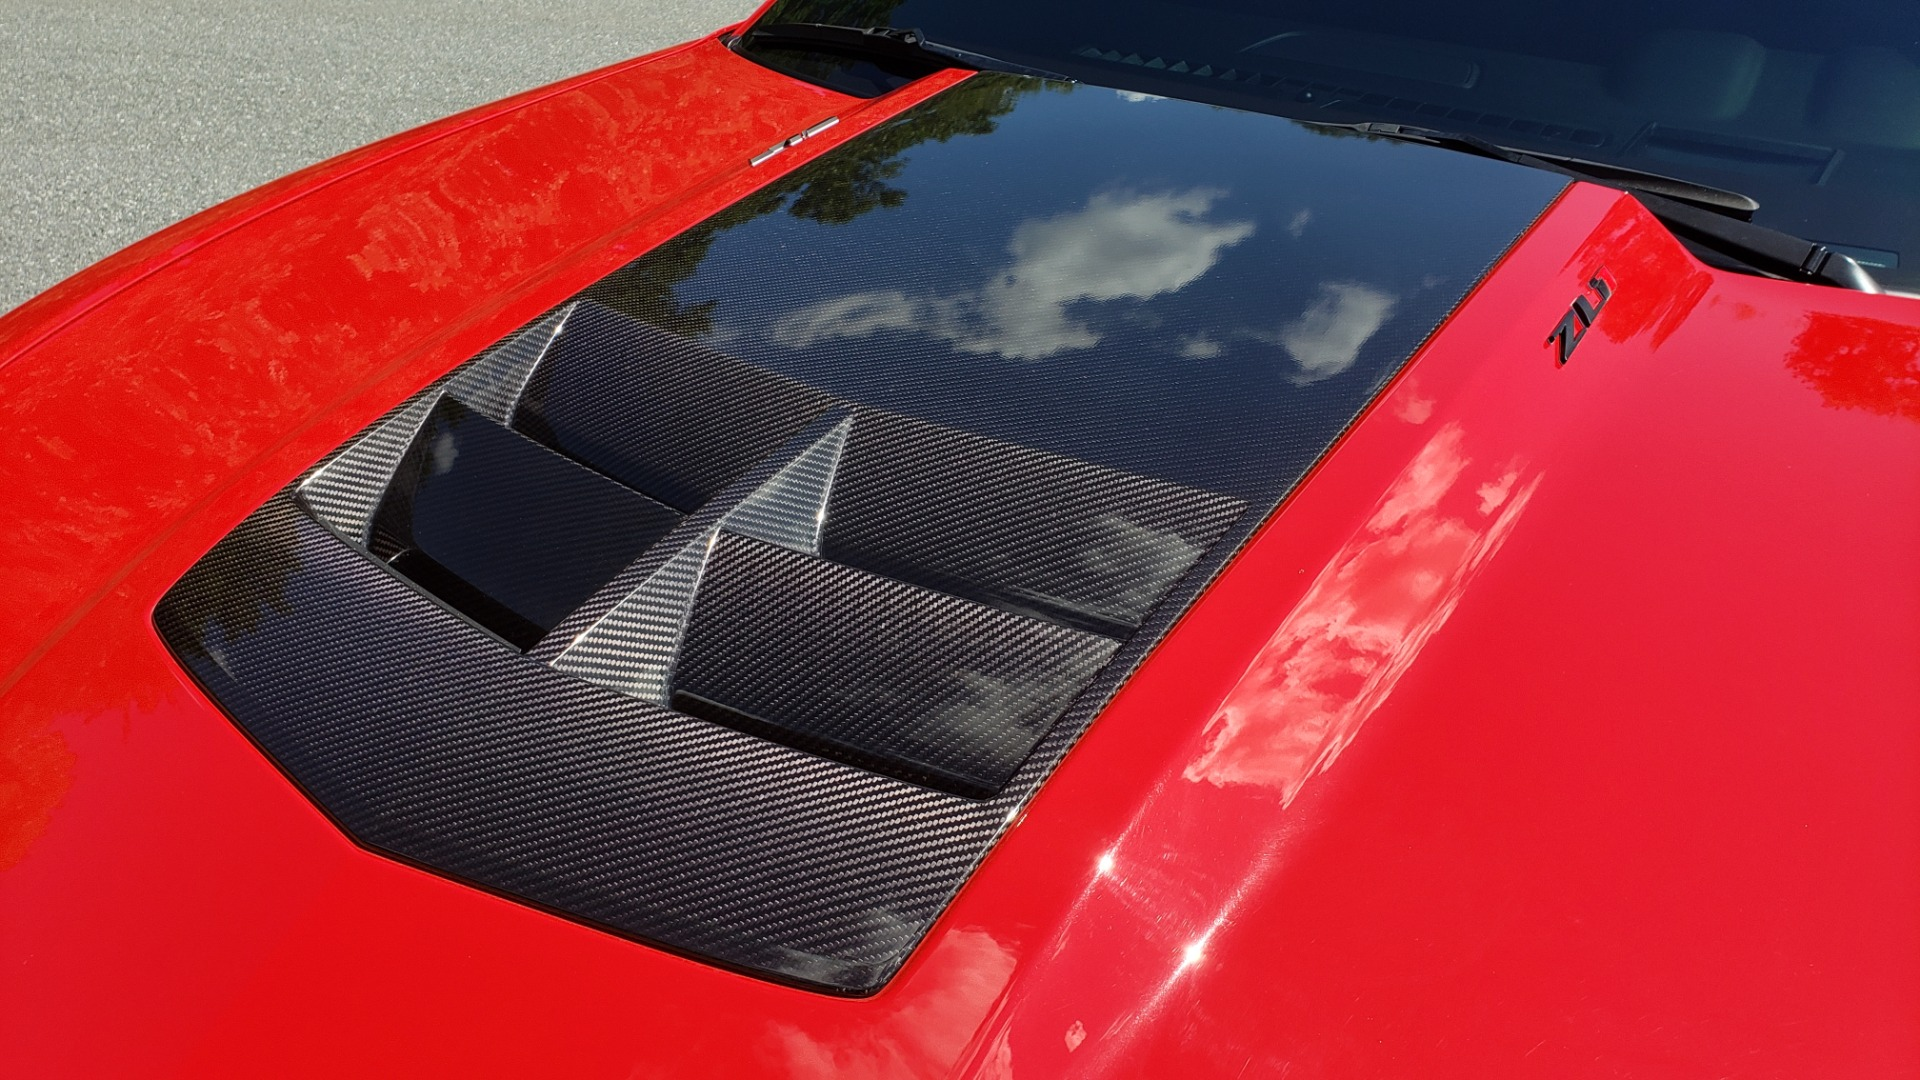 Used 2013 Chevrolet CAMARO ZL1 580HP / AUTO / NAV / BOSTON ACOUSTIC SND / REARVIEW for sale $40,995 at Formula Imports in Charlotte NC 28227 13